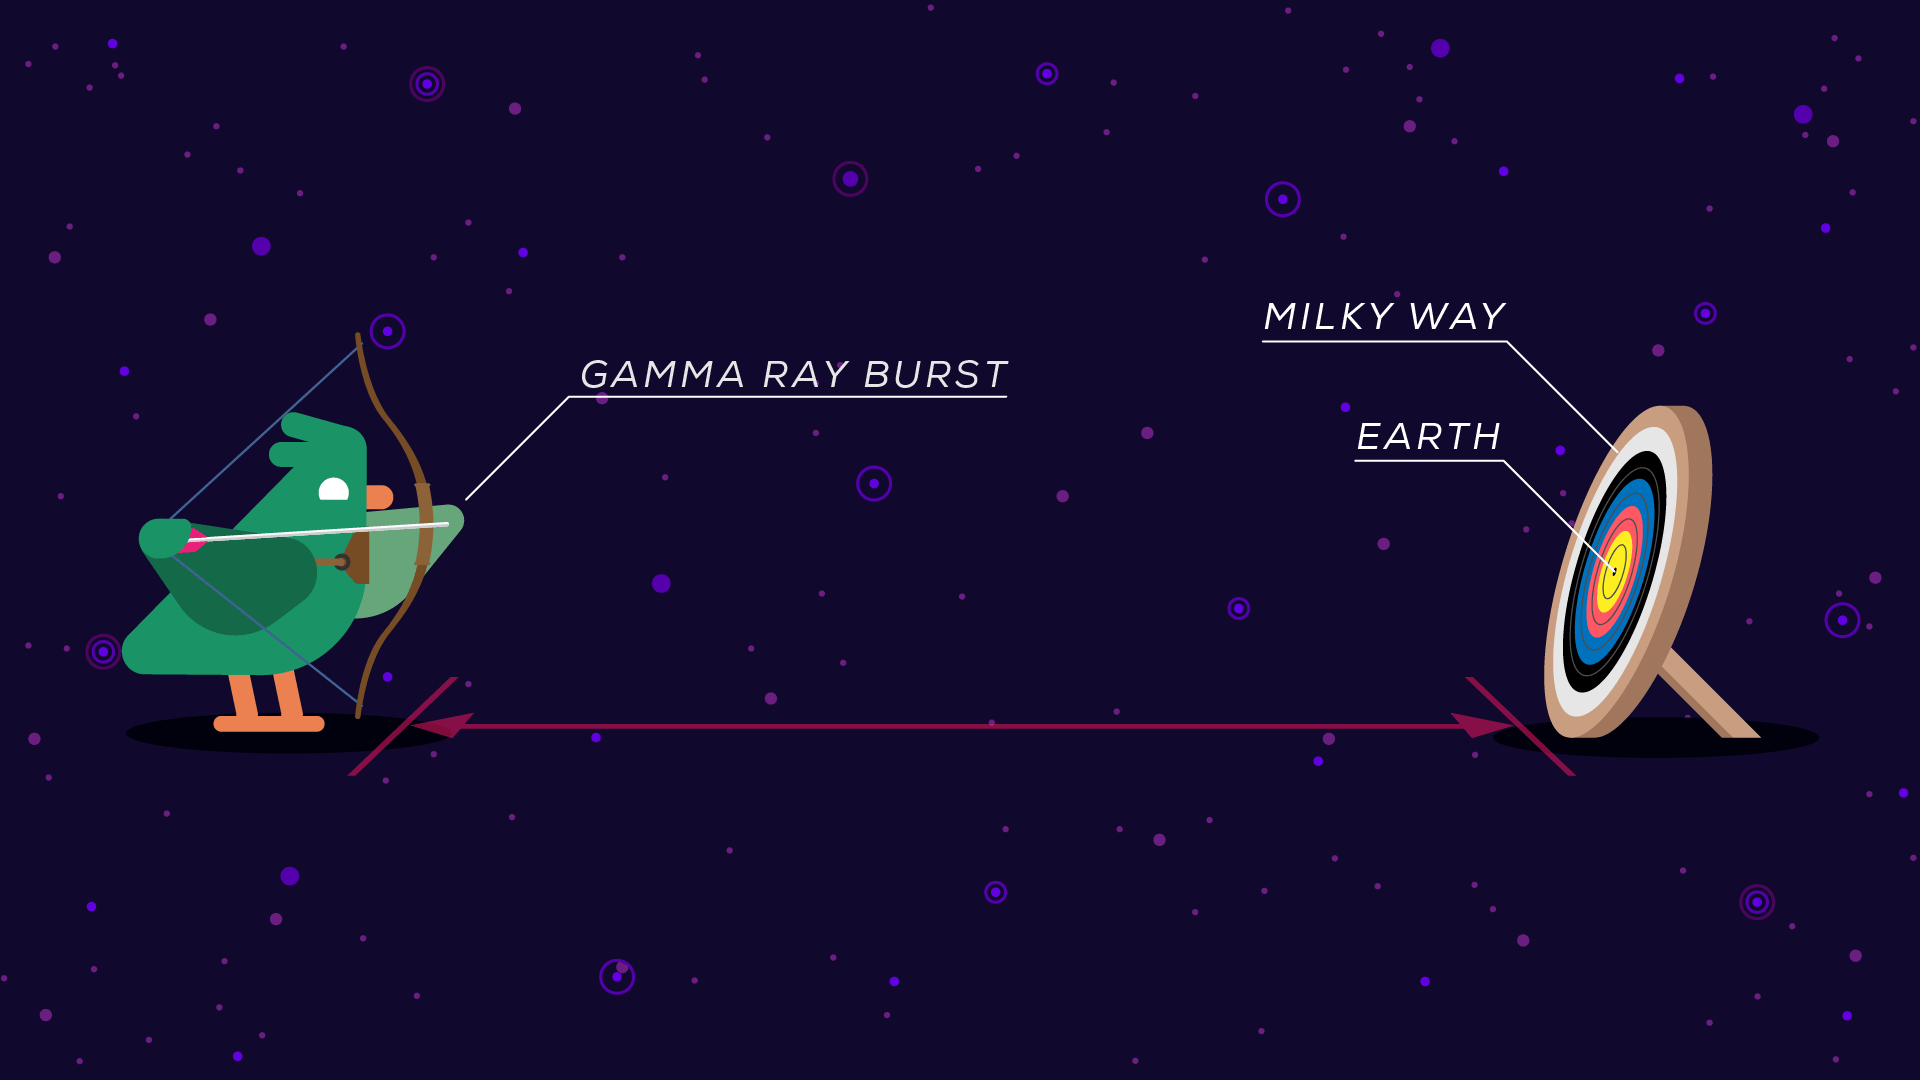 410_Gamma_Ray_Burst_Kurzgesagt Project Pic 10